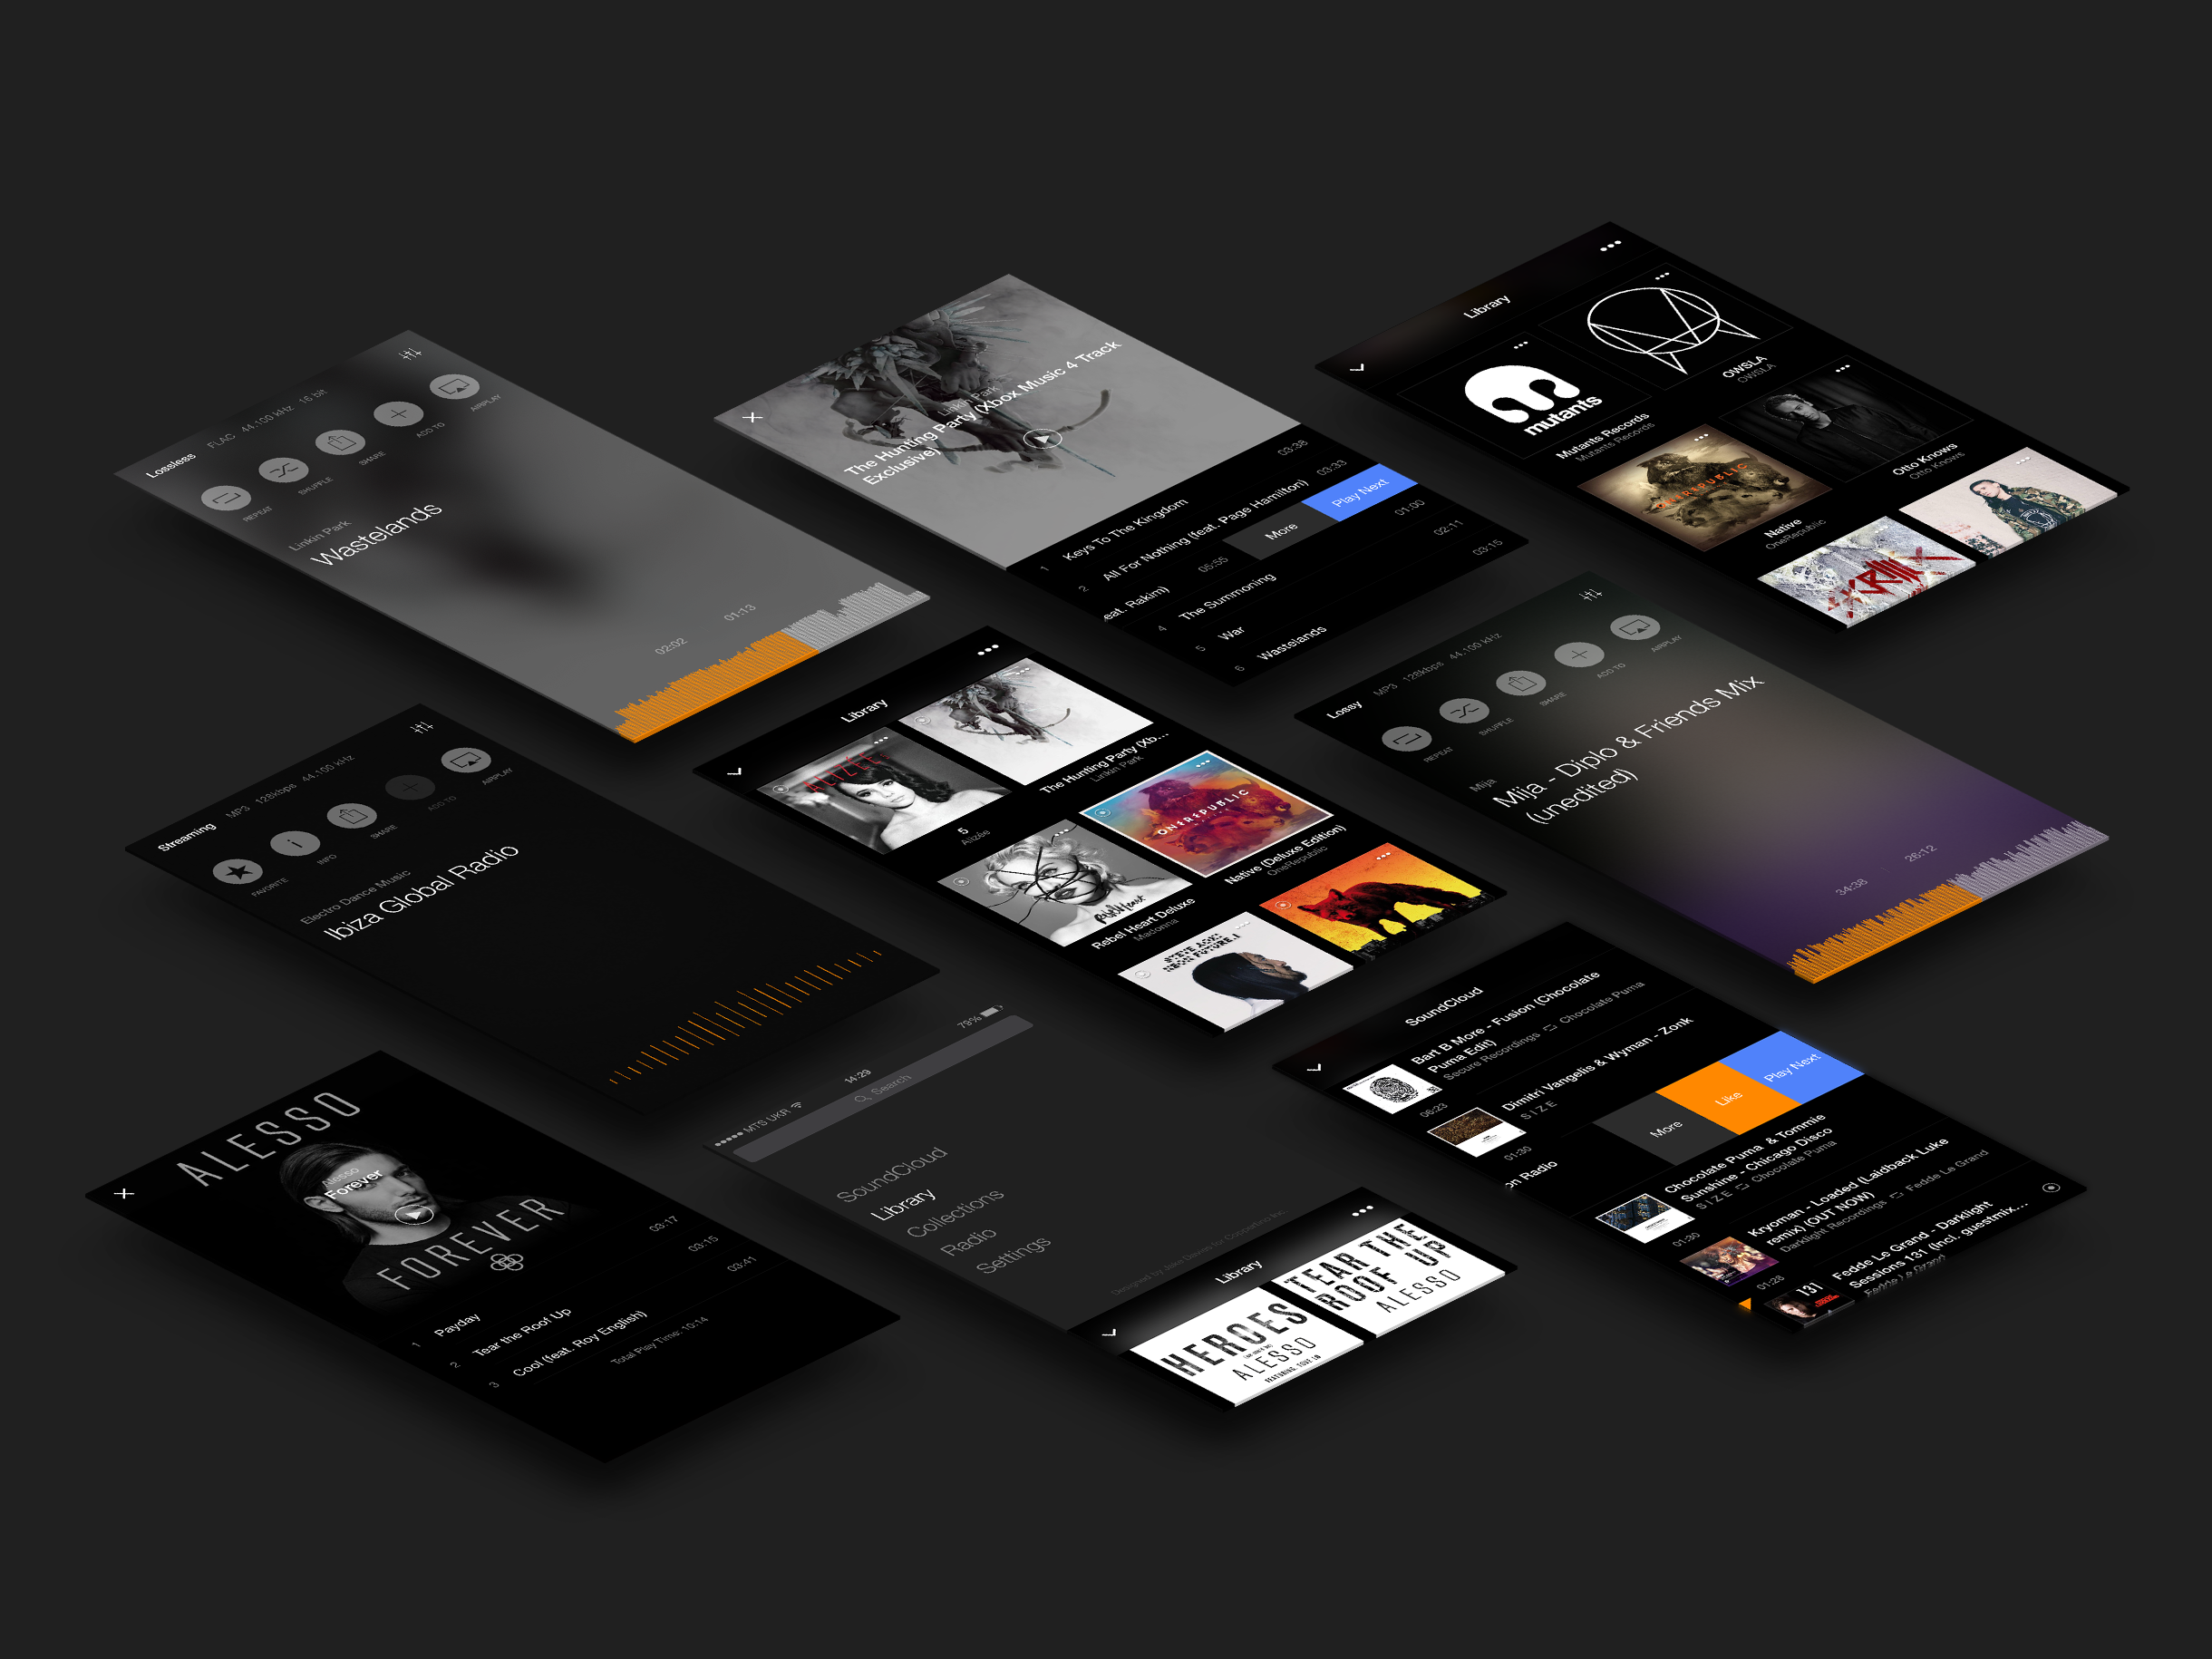 VOX for iOS - The #1 music player for Mac, now on your